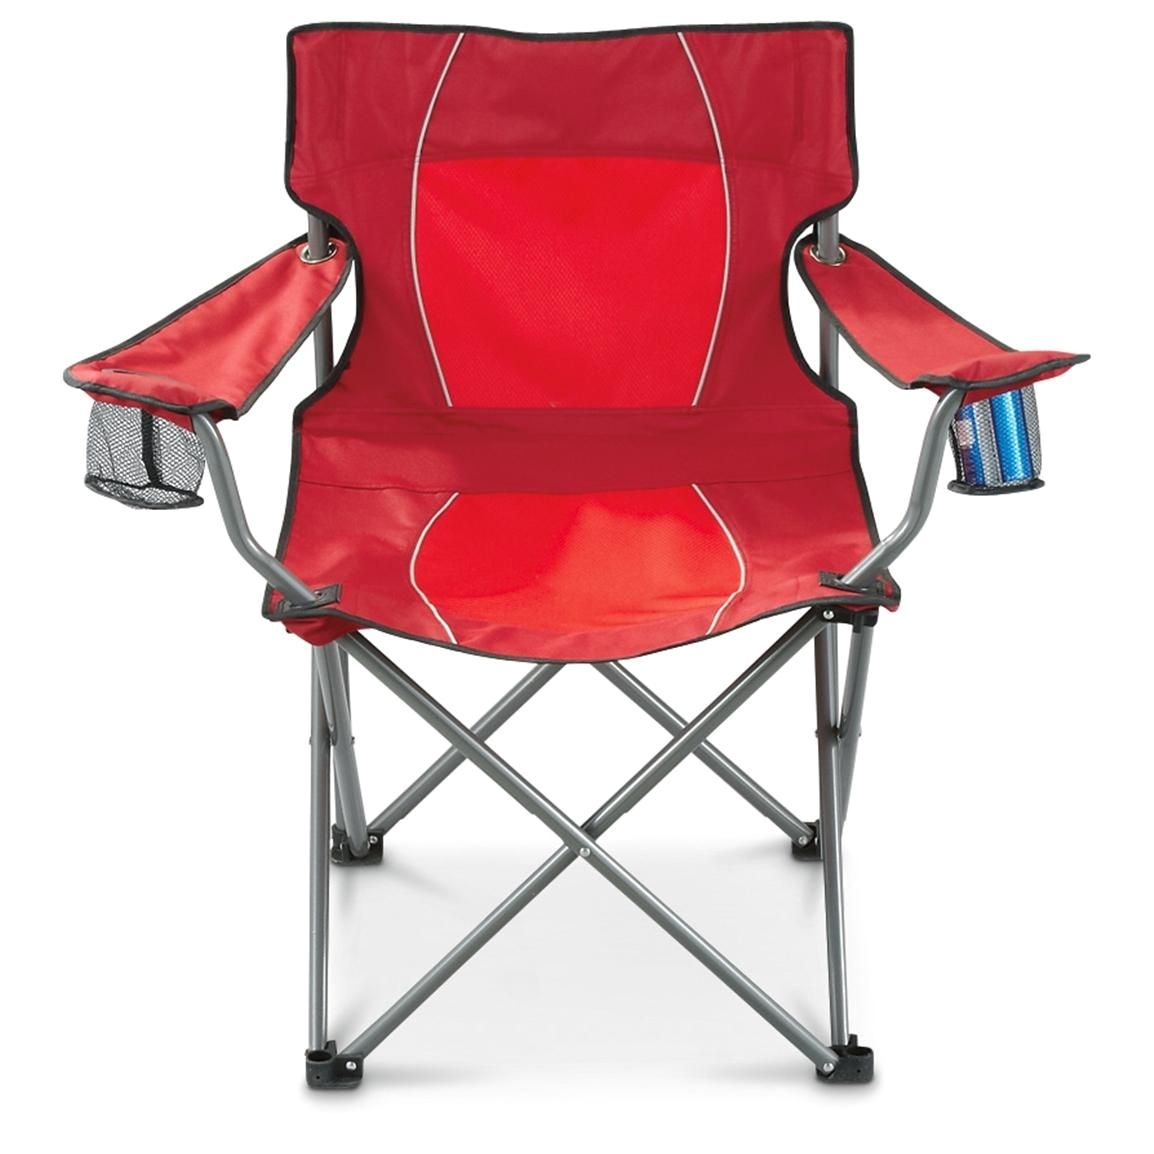 Most Sturdy Camping Chair Guide Geara Monster Camp Chair Best Heavy Duty Camping Chairs for